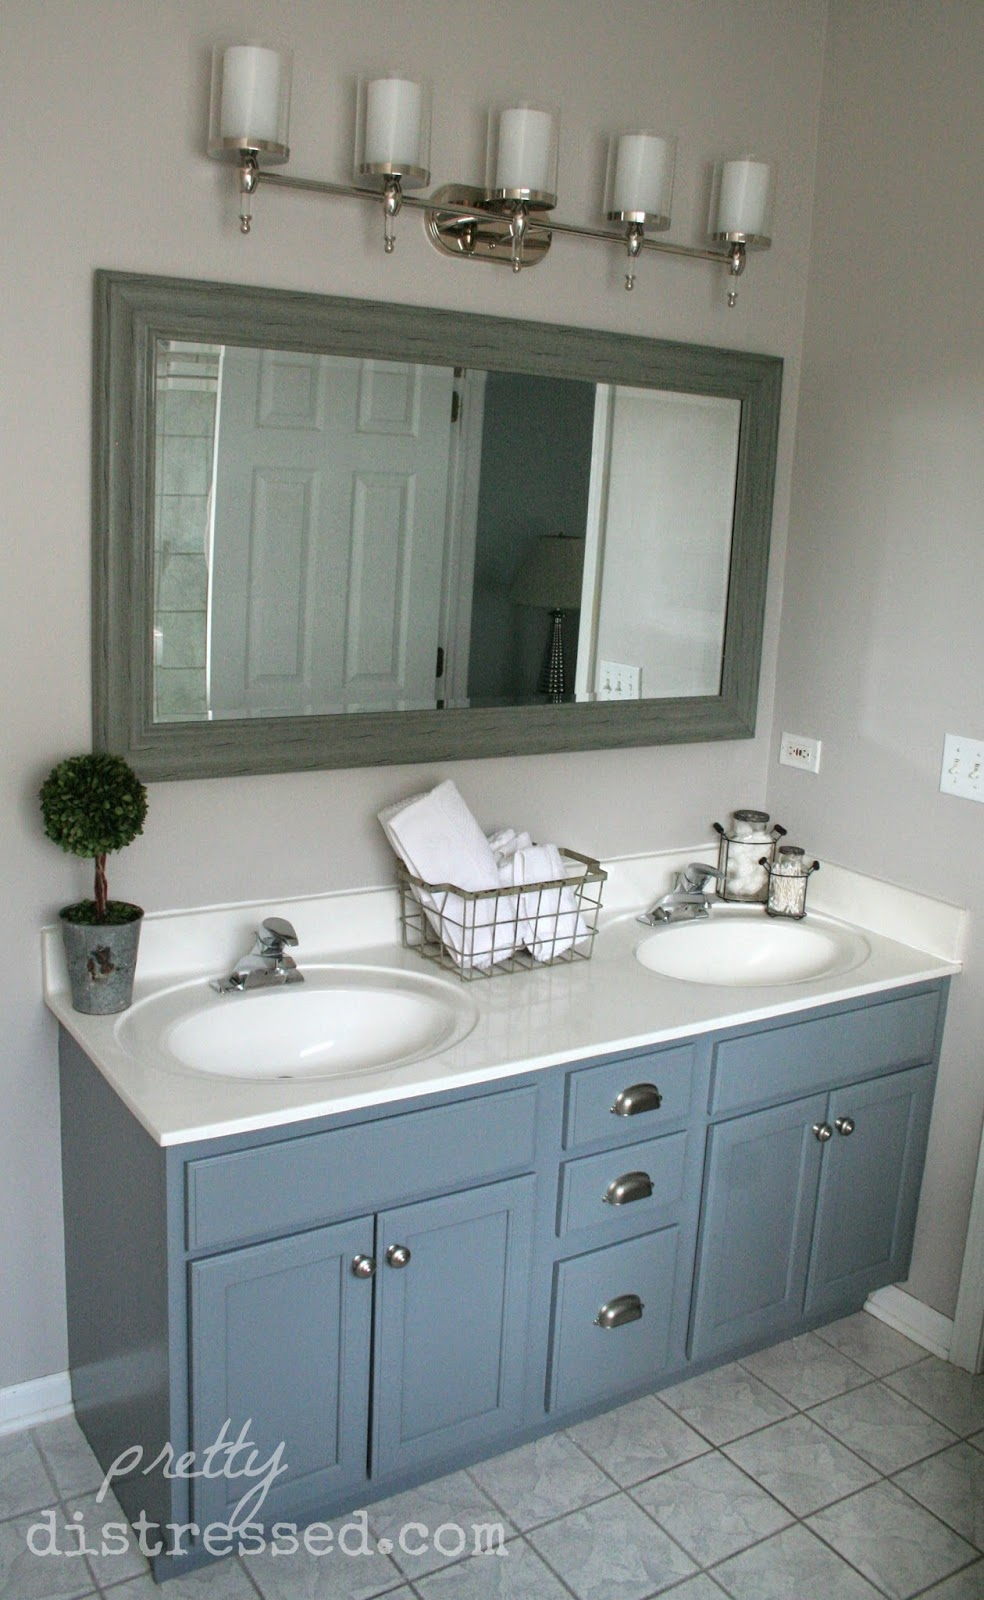 Pretty Distressed: Bathroom Vanity Makeover with Latex Paint